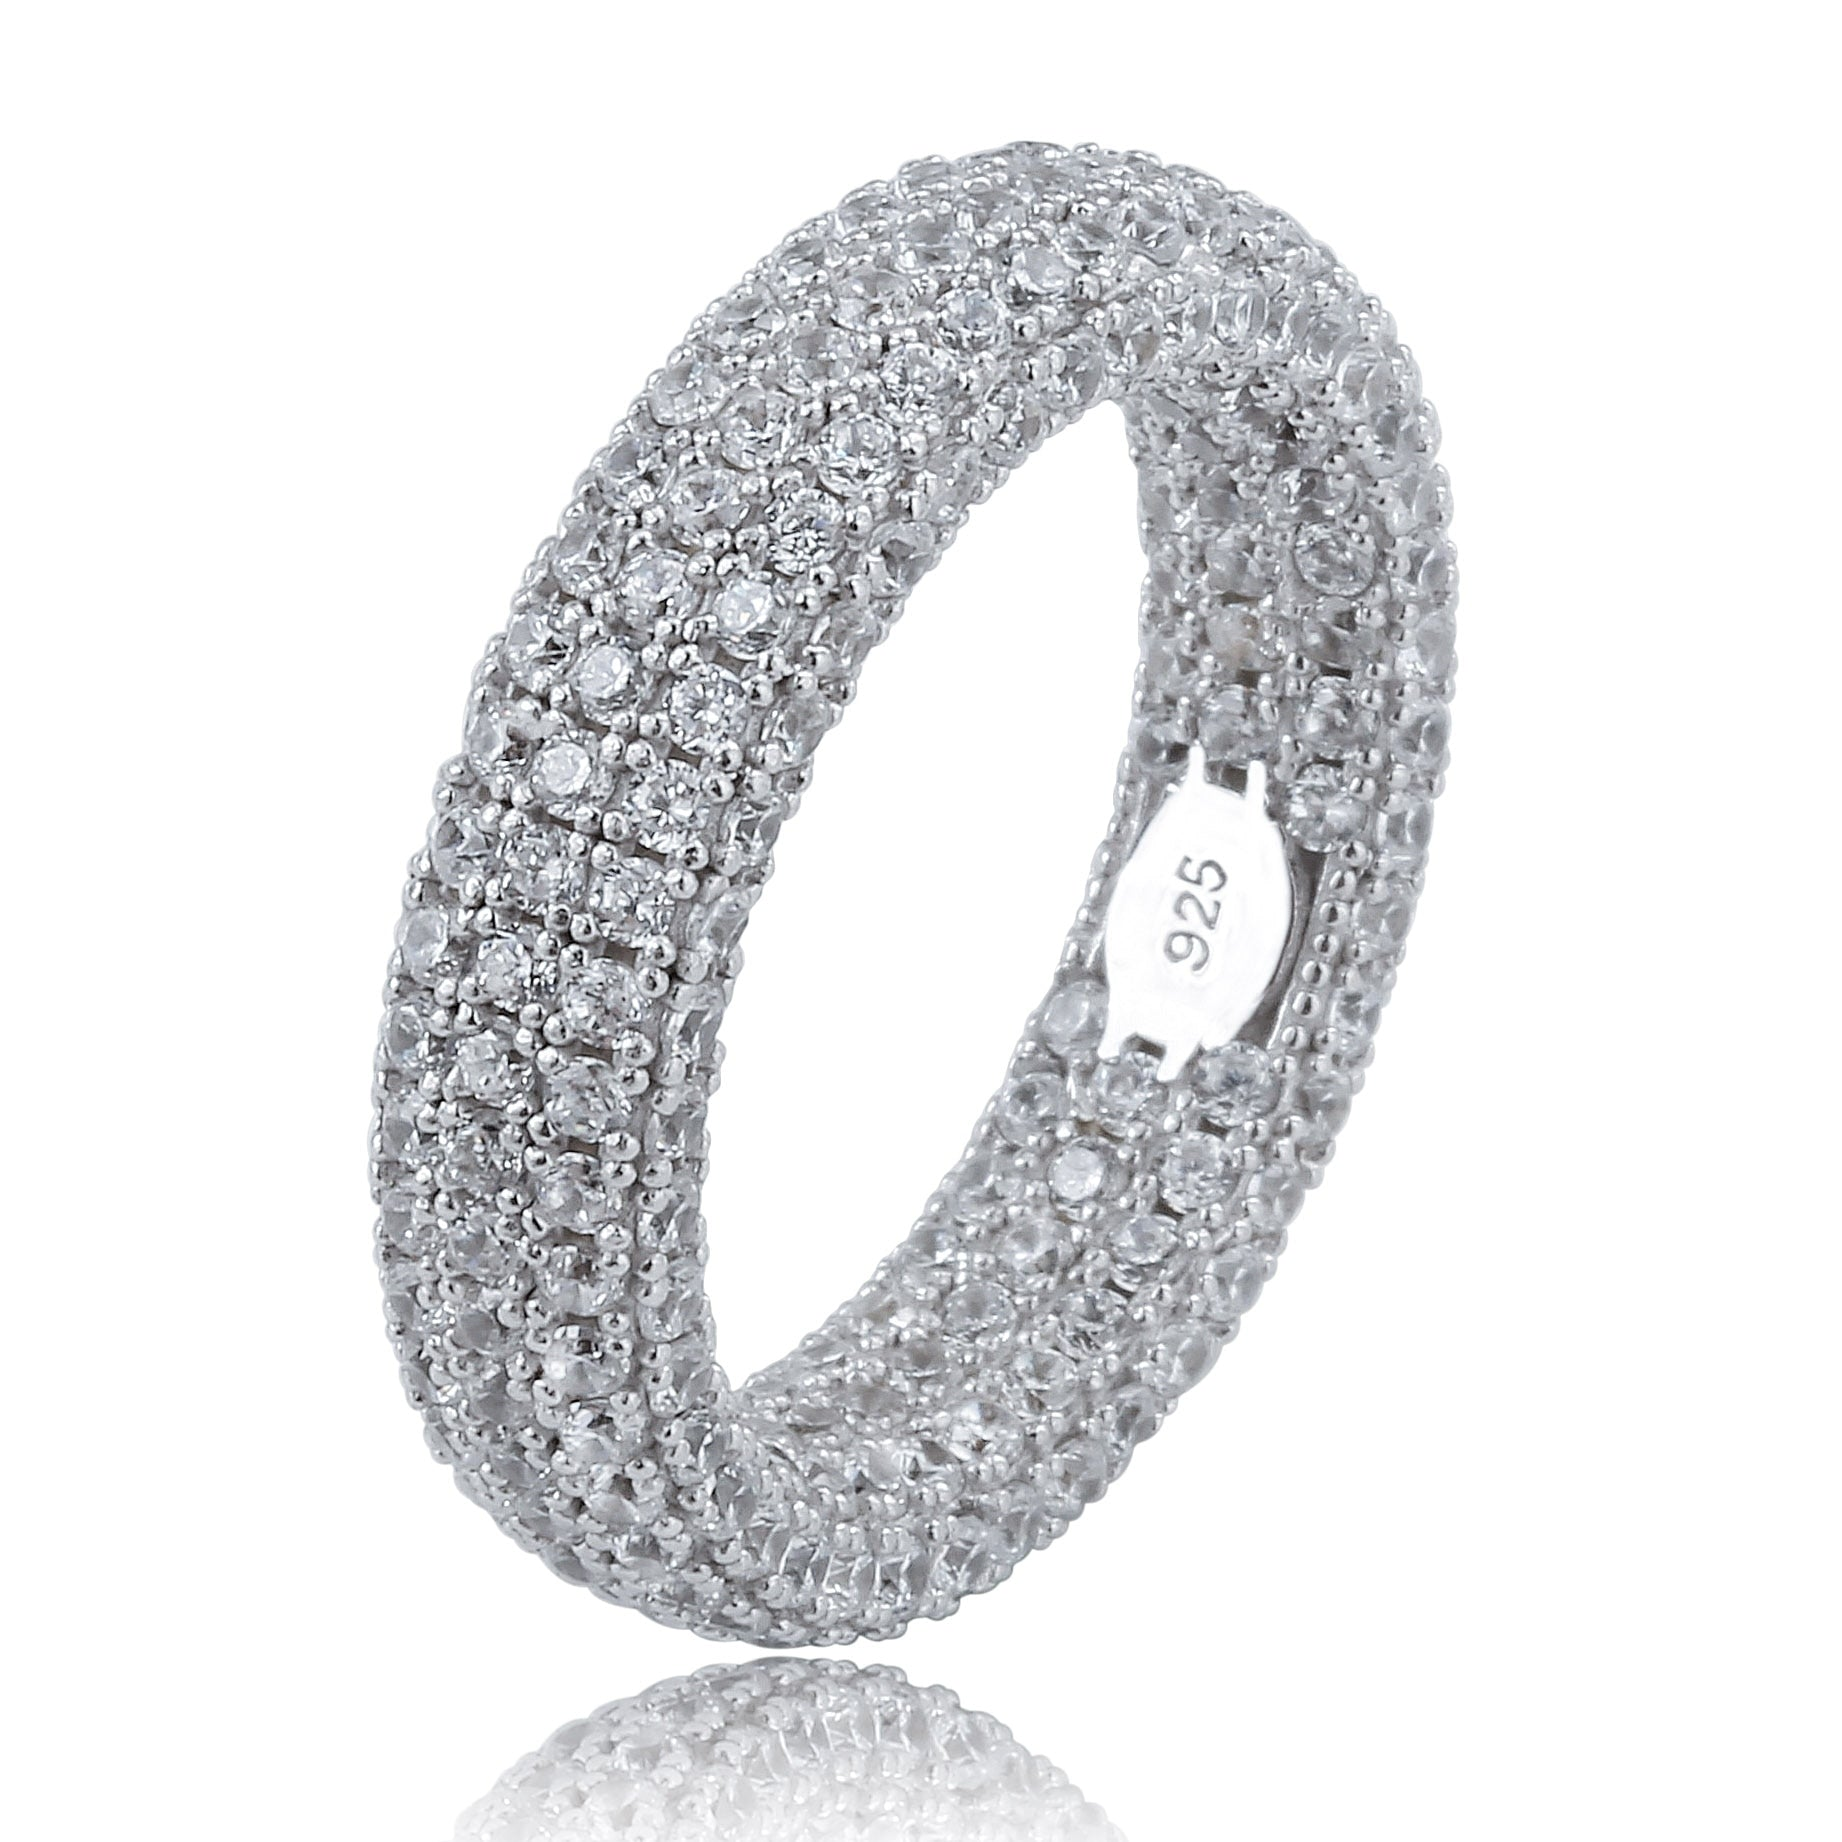 925 sterling silver ring studded with cubic zirconia